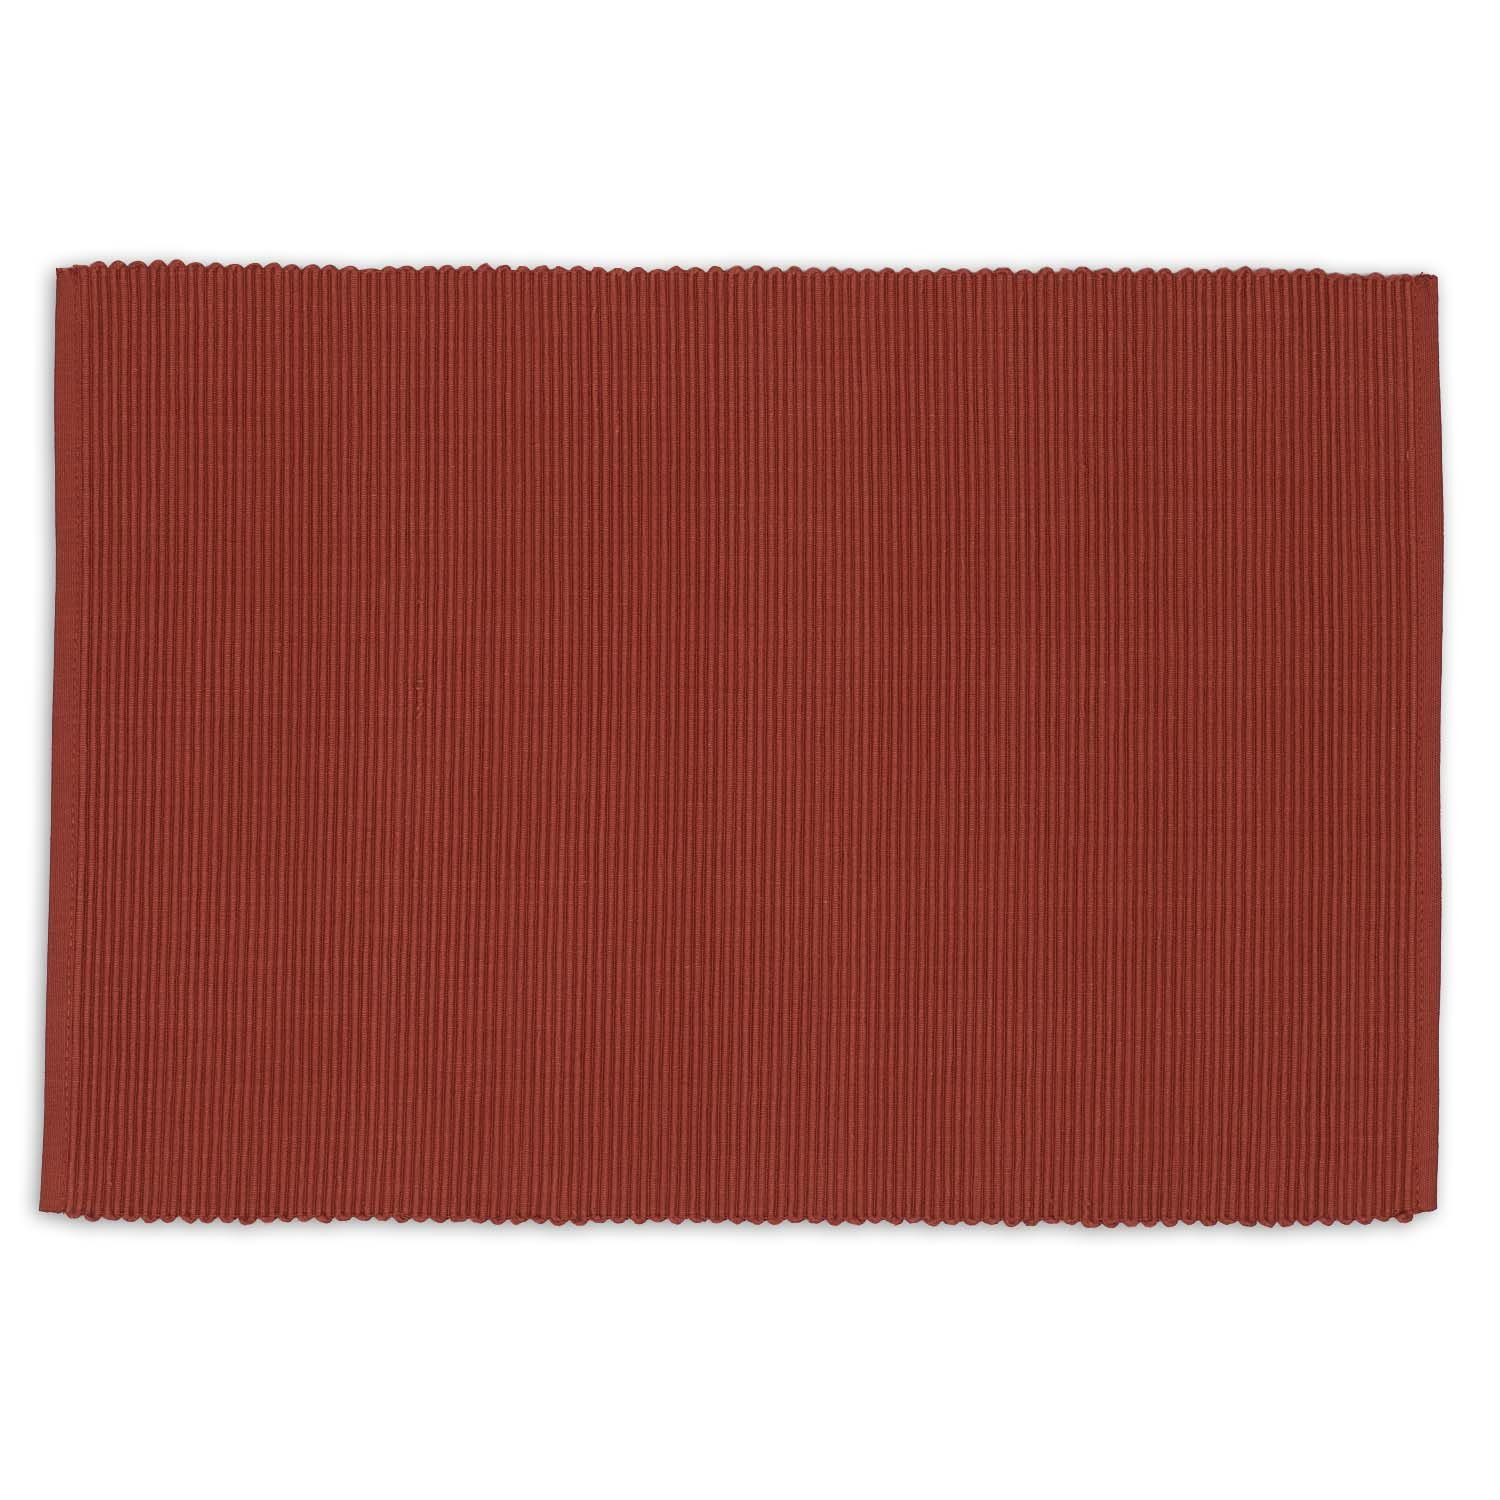 DII Washable Ribbed Cotton Placemat, Set of 6, Clay Red - Perfect for Fall, Dinner Parties, BBQs, Christmas, Weddings and Everyday Use